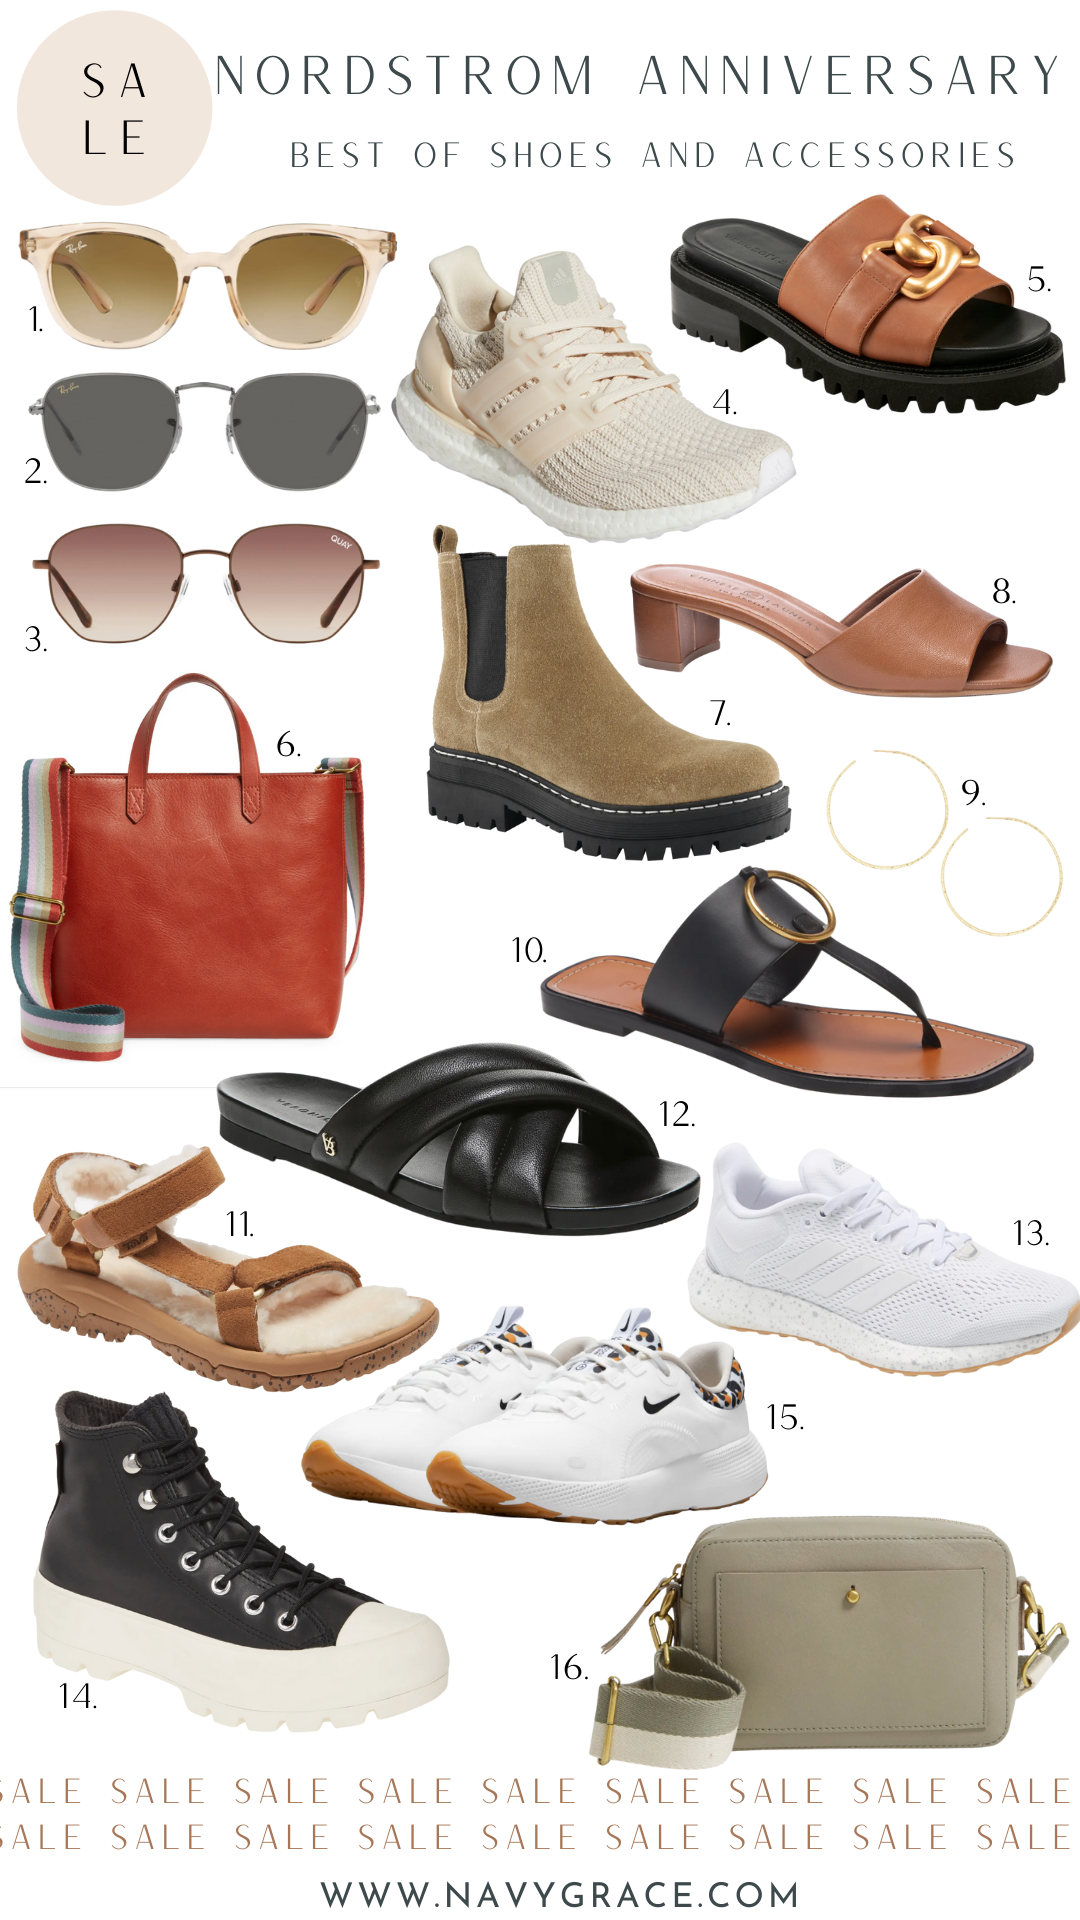 collage of shoes and accessories from Nordstrom Anniversary Sale 2021